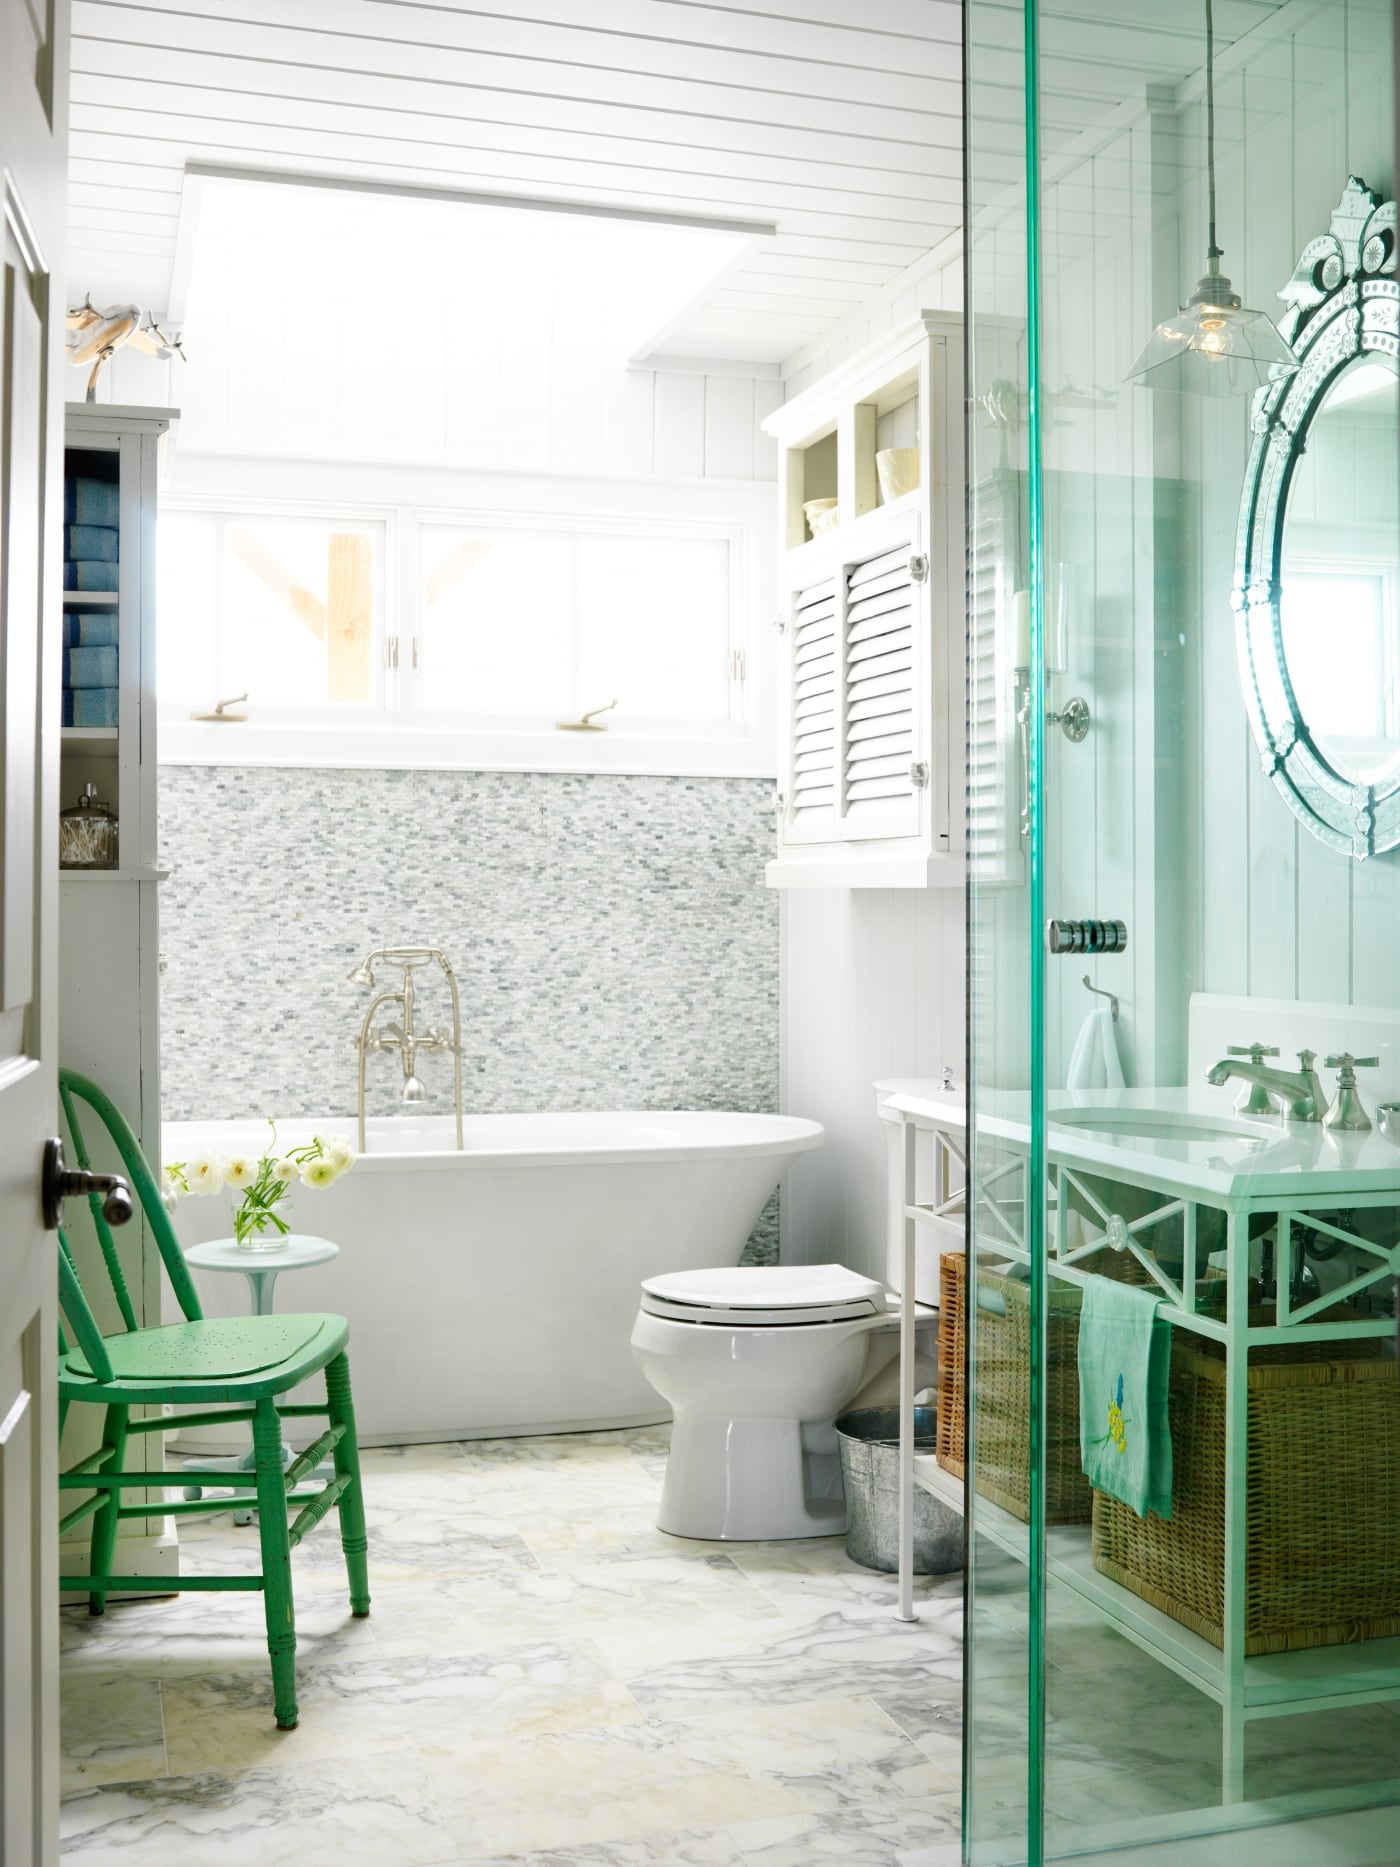 Country bathroom with freestanding tub, vintage chair, and Venetian mirror. #SarahRichardson #cottagestyle